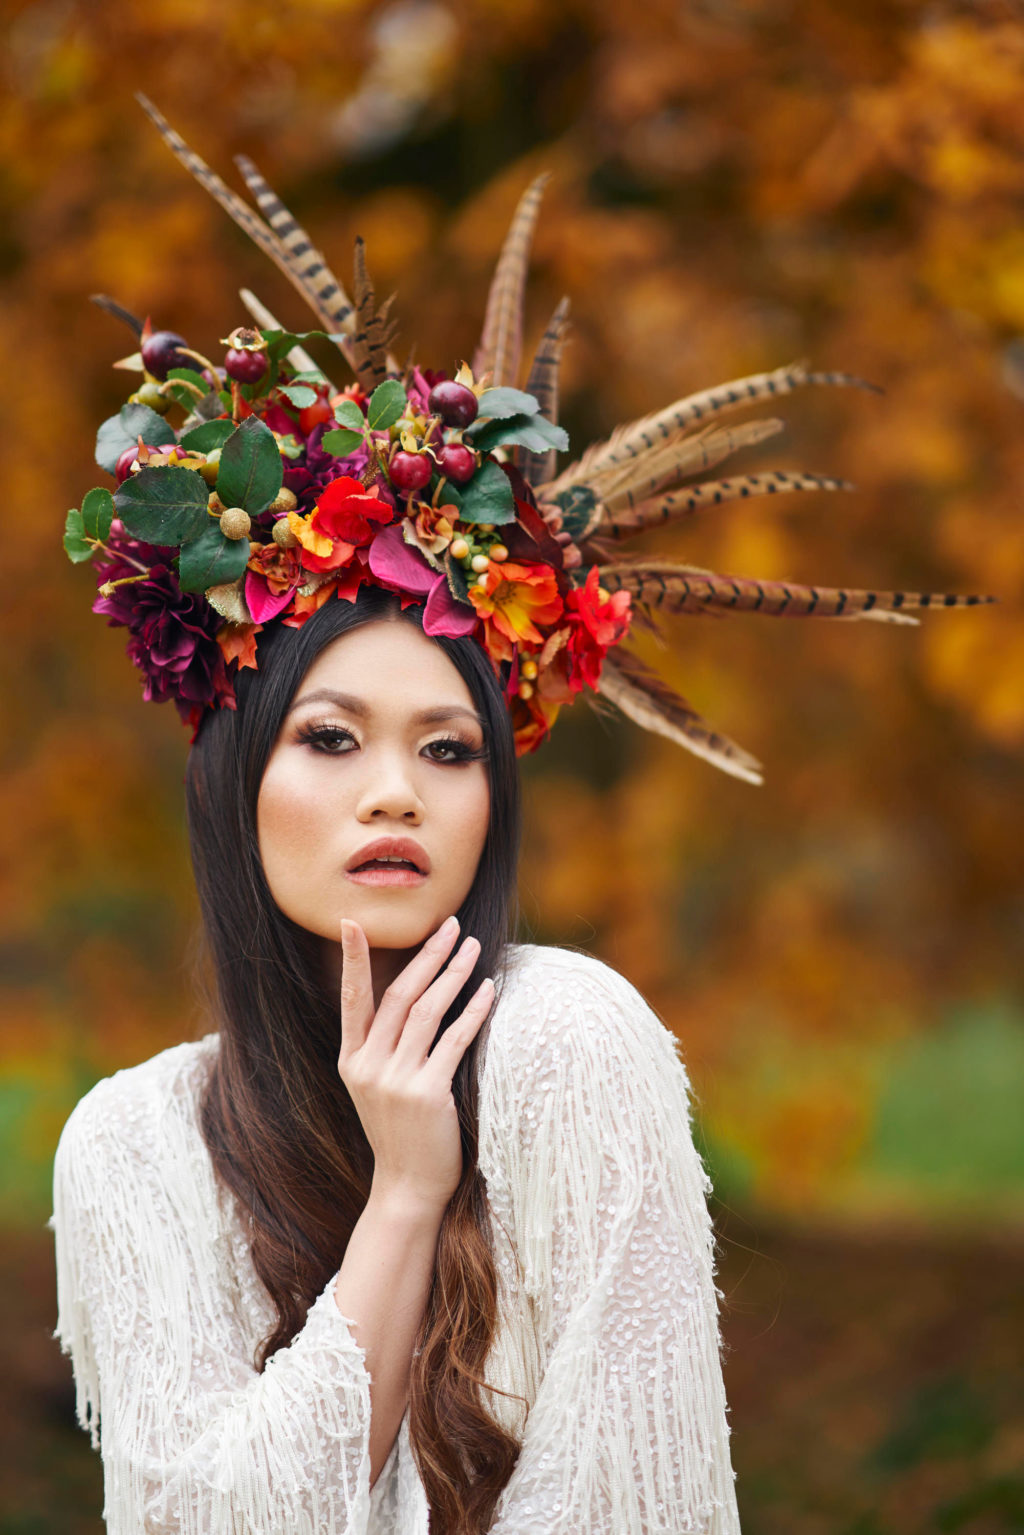 Alternative Christmas Wedding Styled Shoot in reds and golds with large feather headpiece